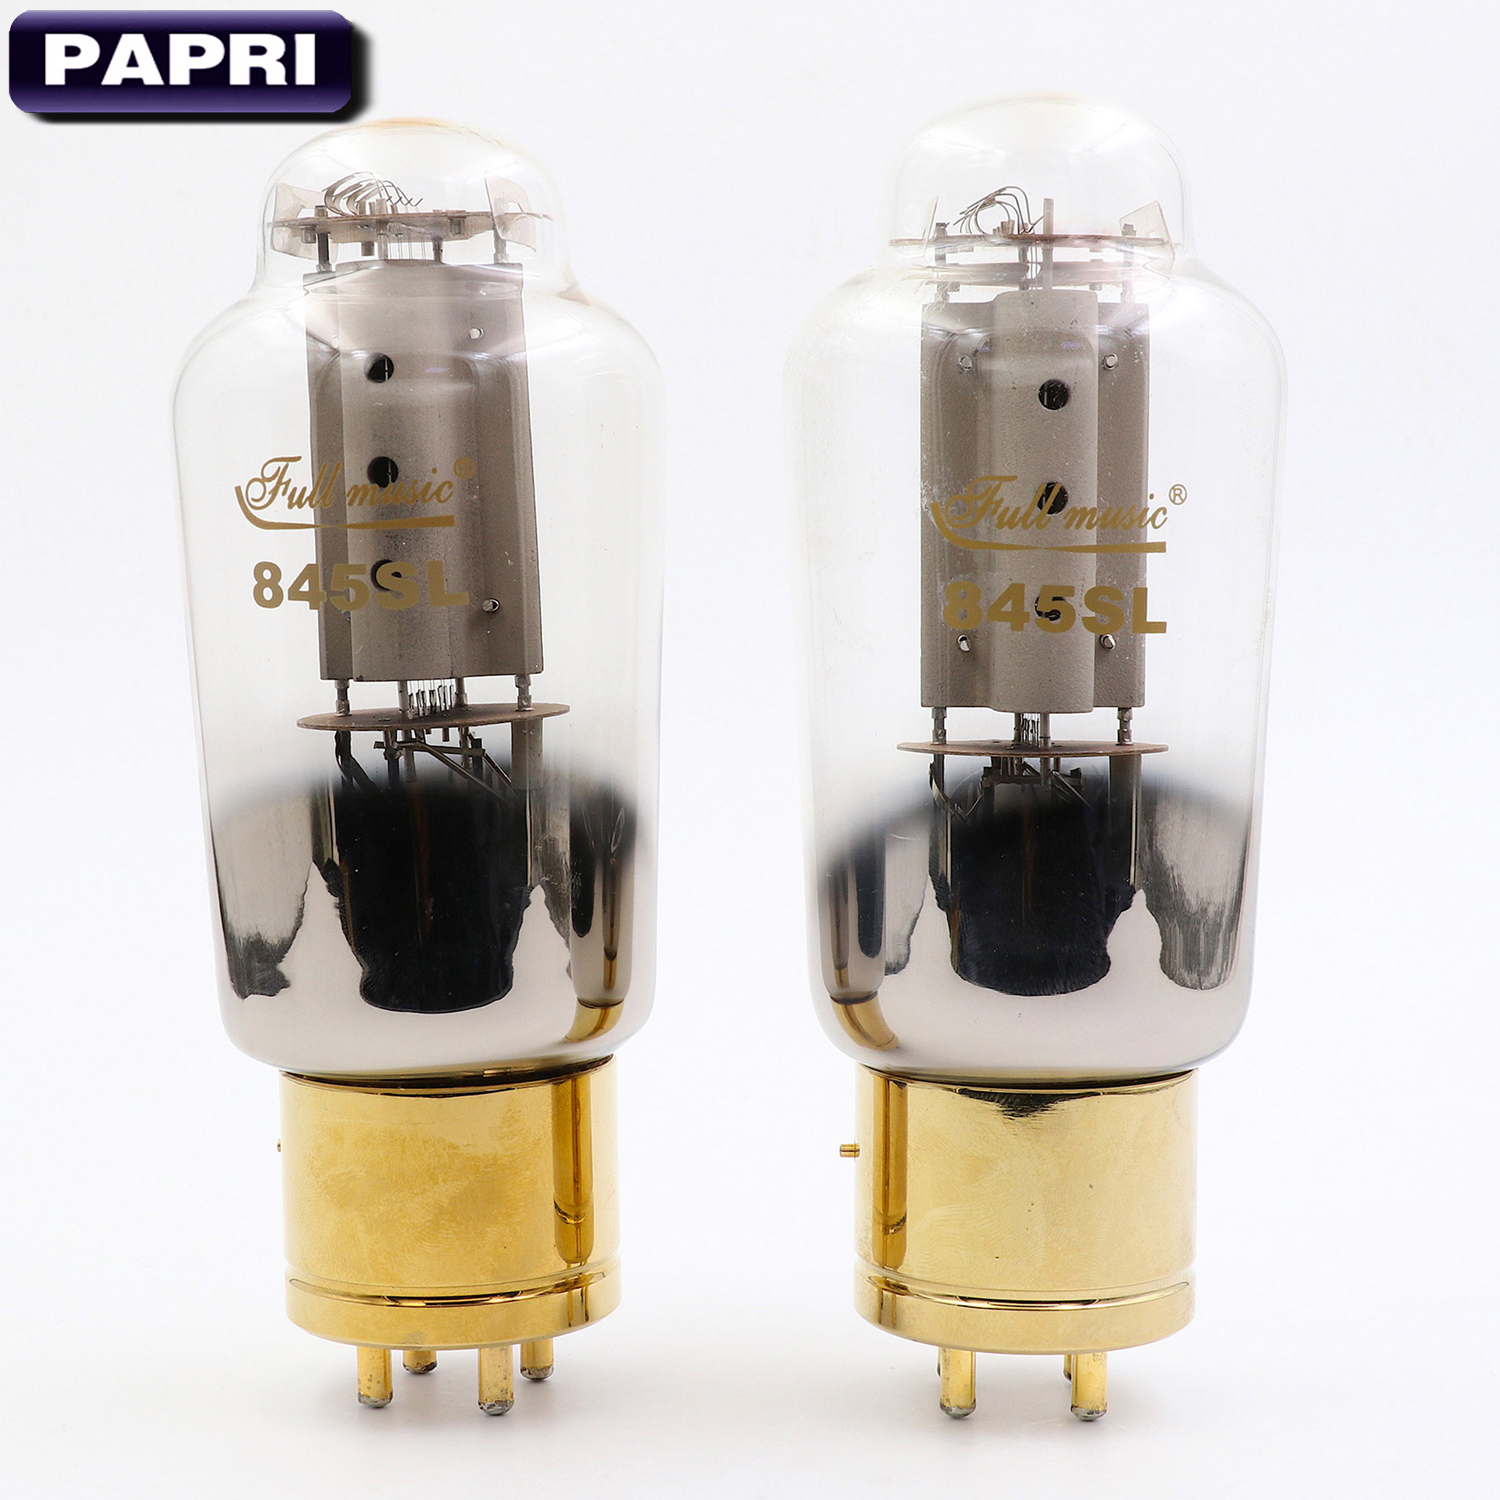 New TJ Fullmusic 845SL Vacuum Tube Vintage Replace 845 Tube For DIY HiFi Amplifier Audio Speaker 2PCS/Lot Test Matched Pair brand new matched pair quad tj fullmusic kt88 cne kt88cne vacuum power tube replace kt88 6550 hifi vintage tube audio amp diy